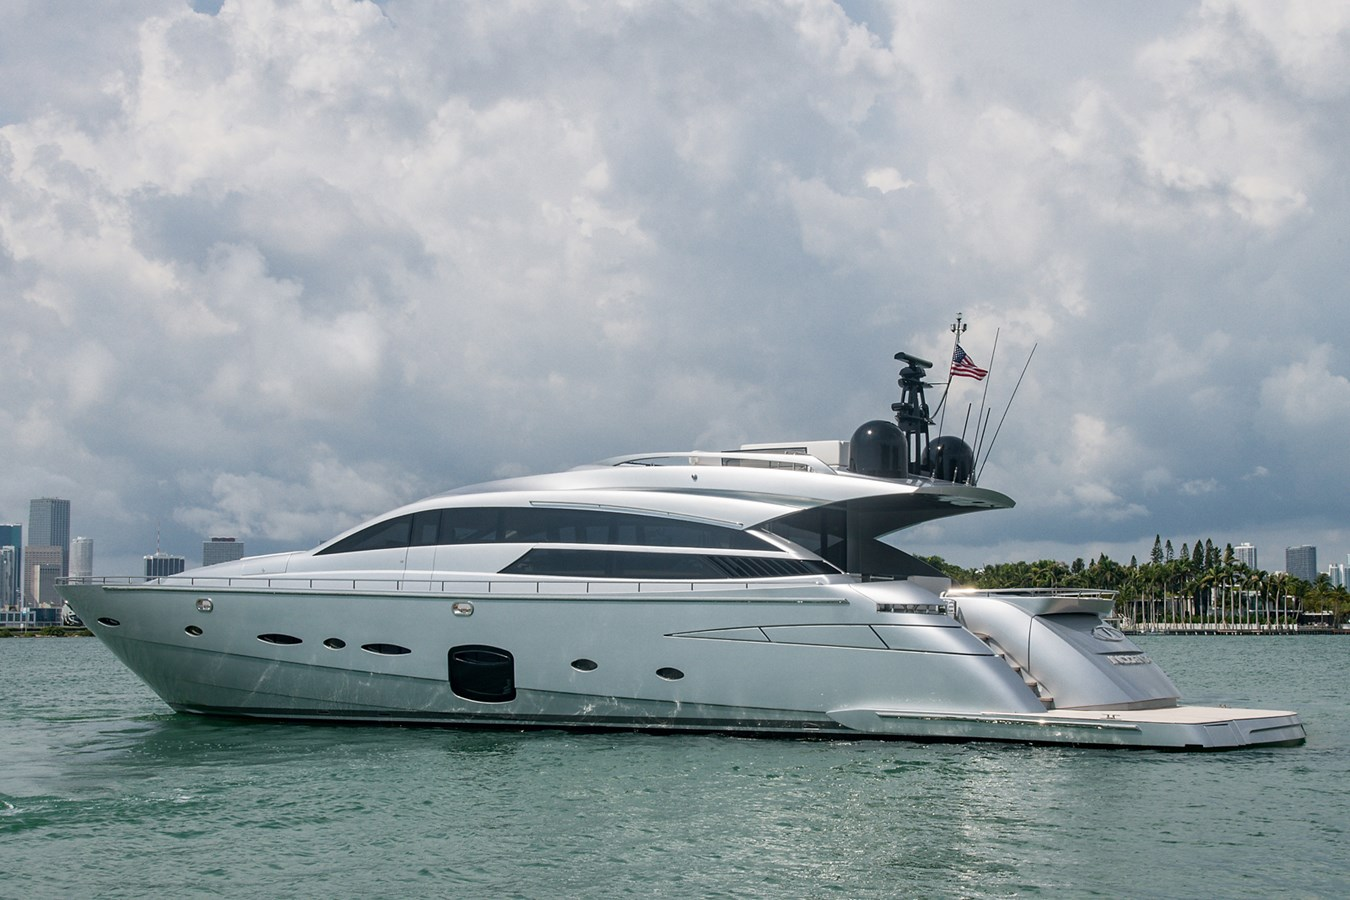 Incognito_Stern Profile1 2012 PERSHING  Motor Yacht 2810533